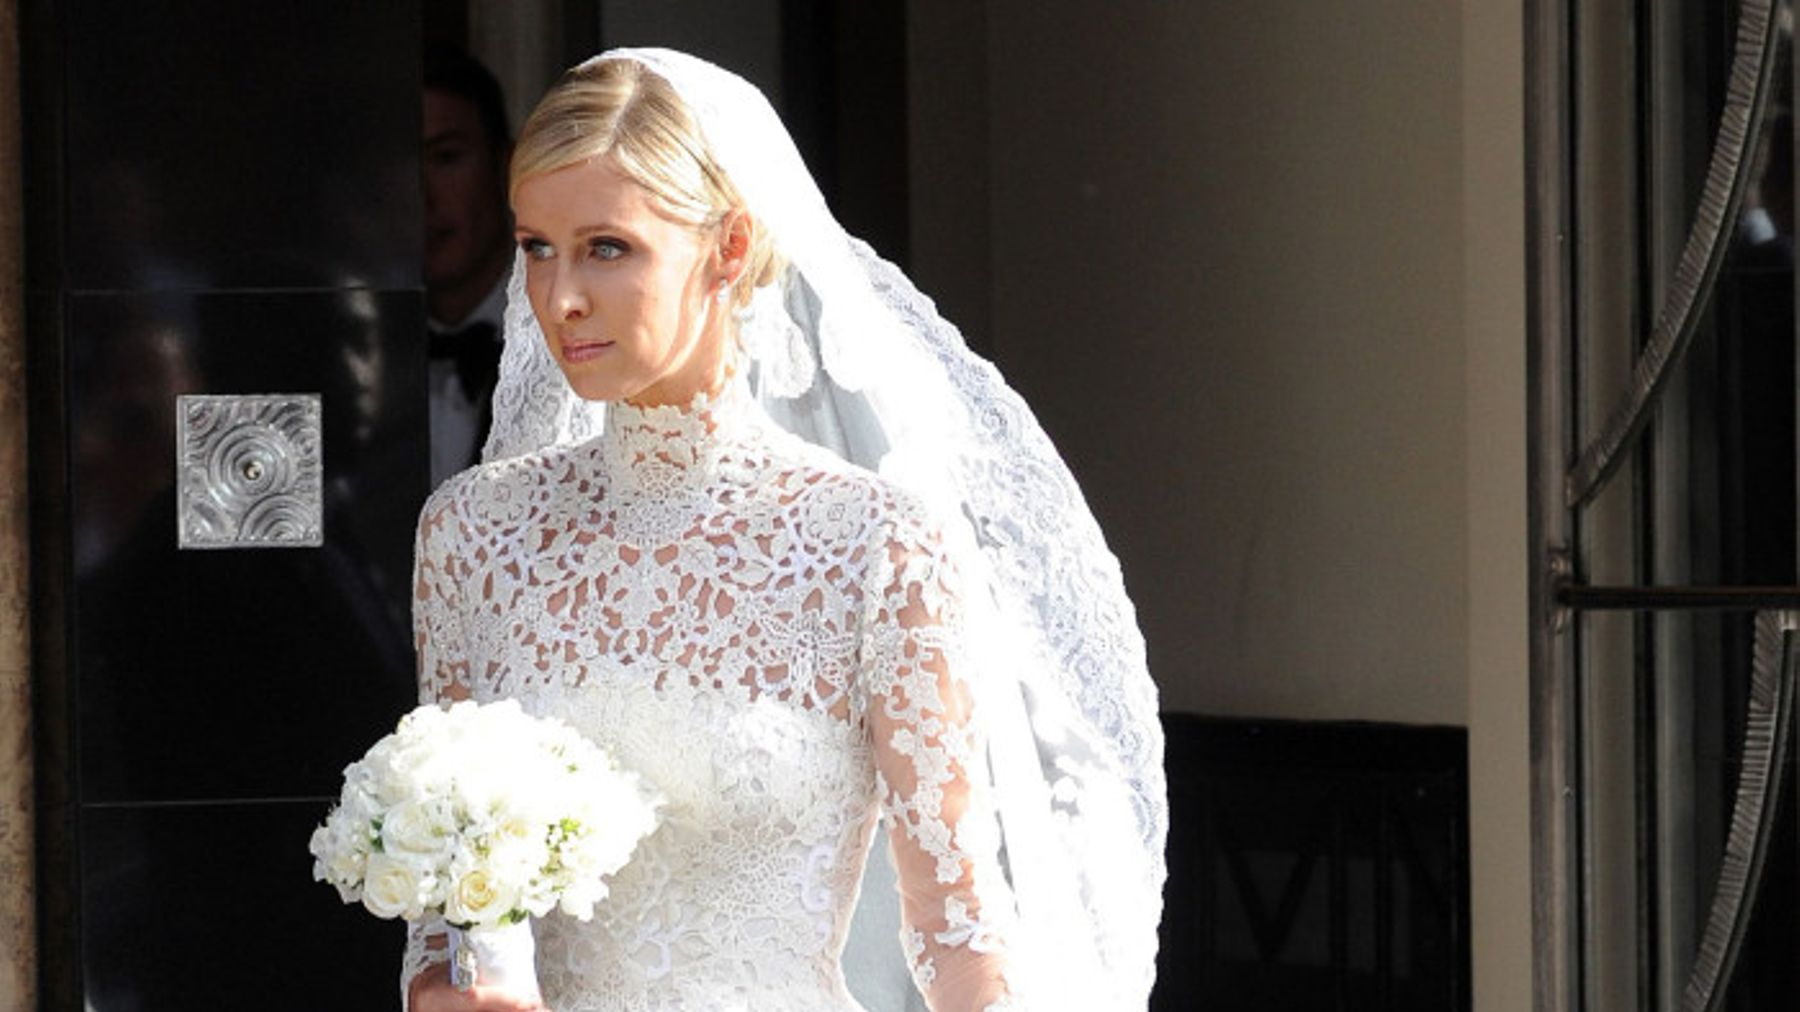 84bb1bde94b9 Inside Nicky Hilton s Fairytale London Wedding To James Rothschild ...